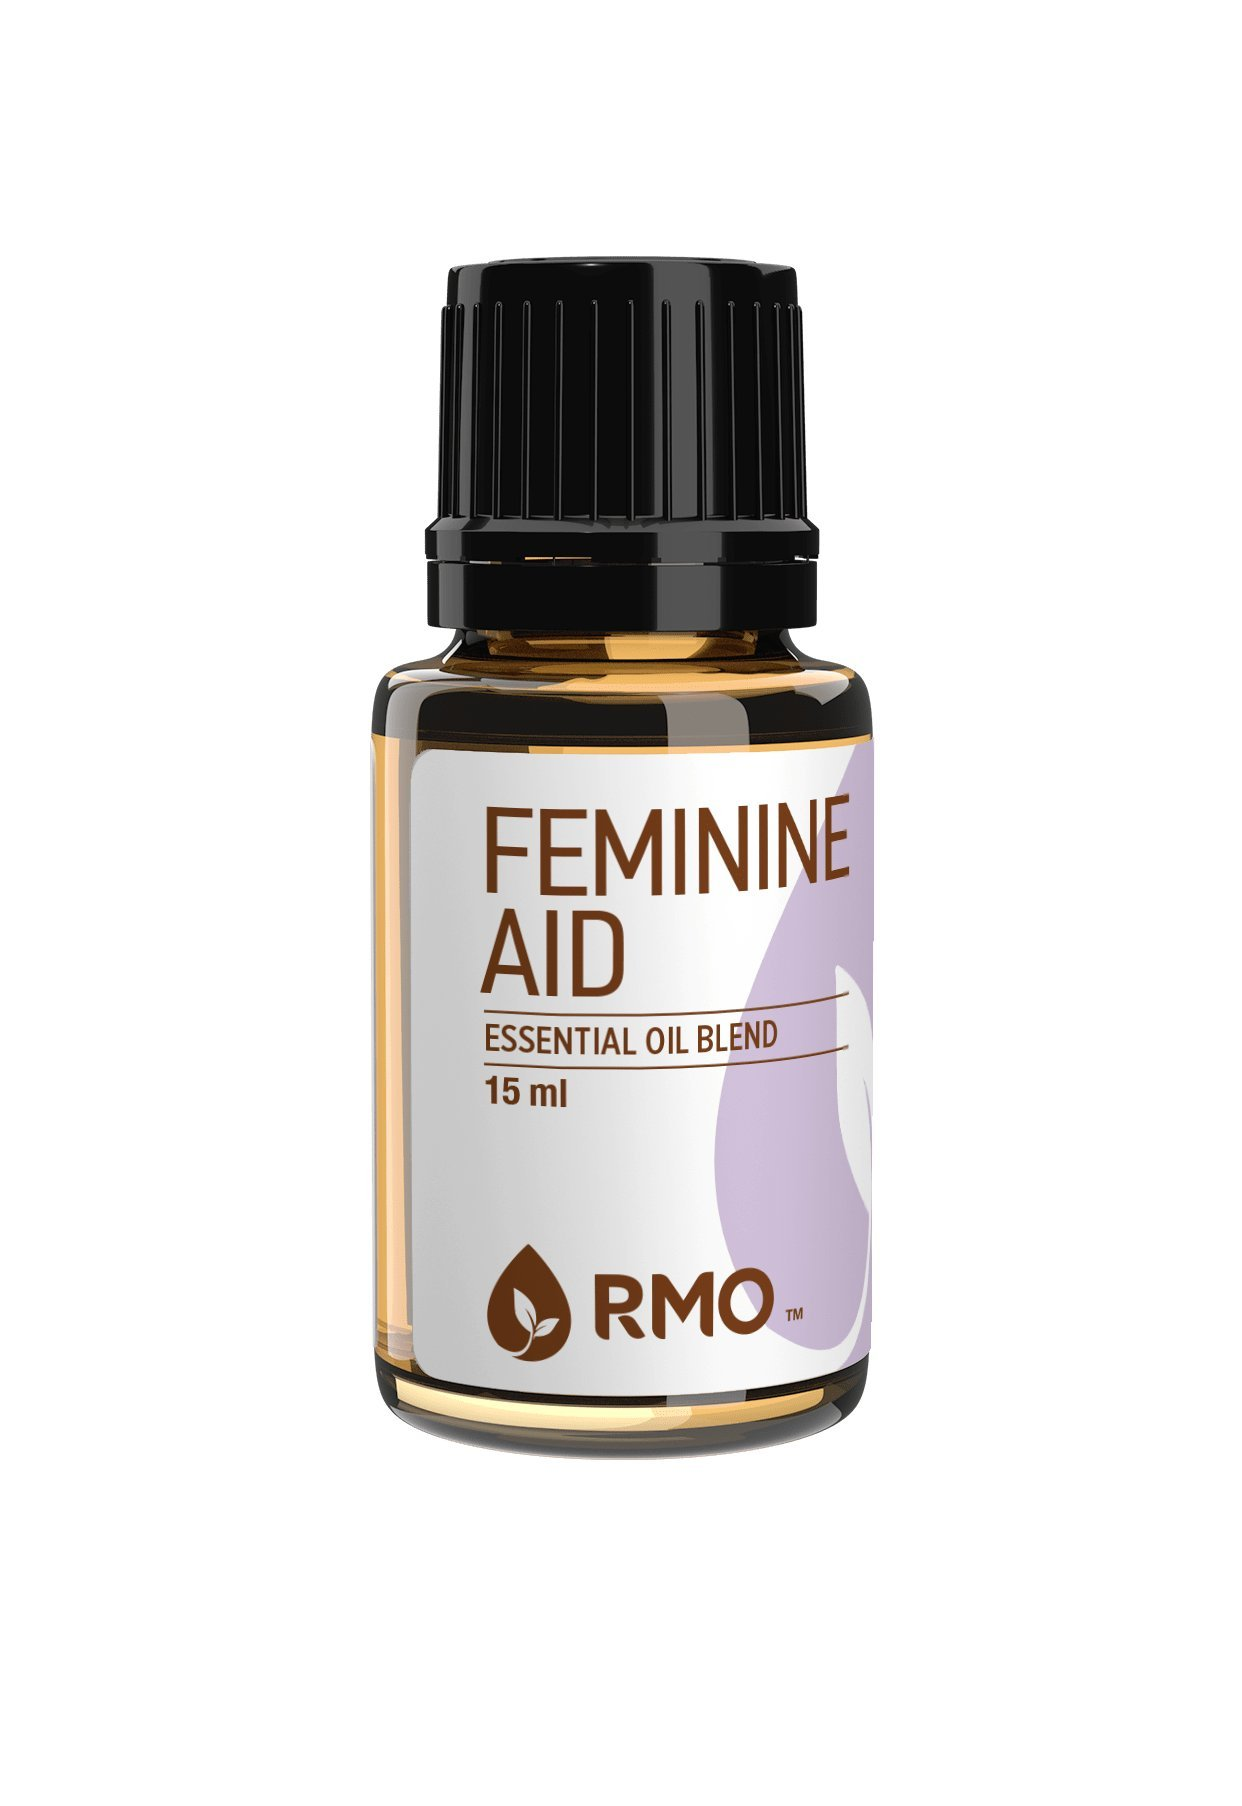 Rocky Mountain Oils - Feminine Aid - 15 ml - 100% Pure and Natural Essential Oil Blend by Rocky Mountain Oils